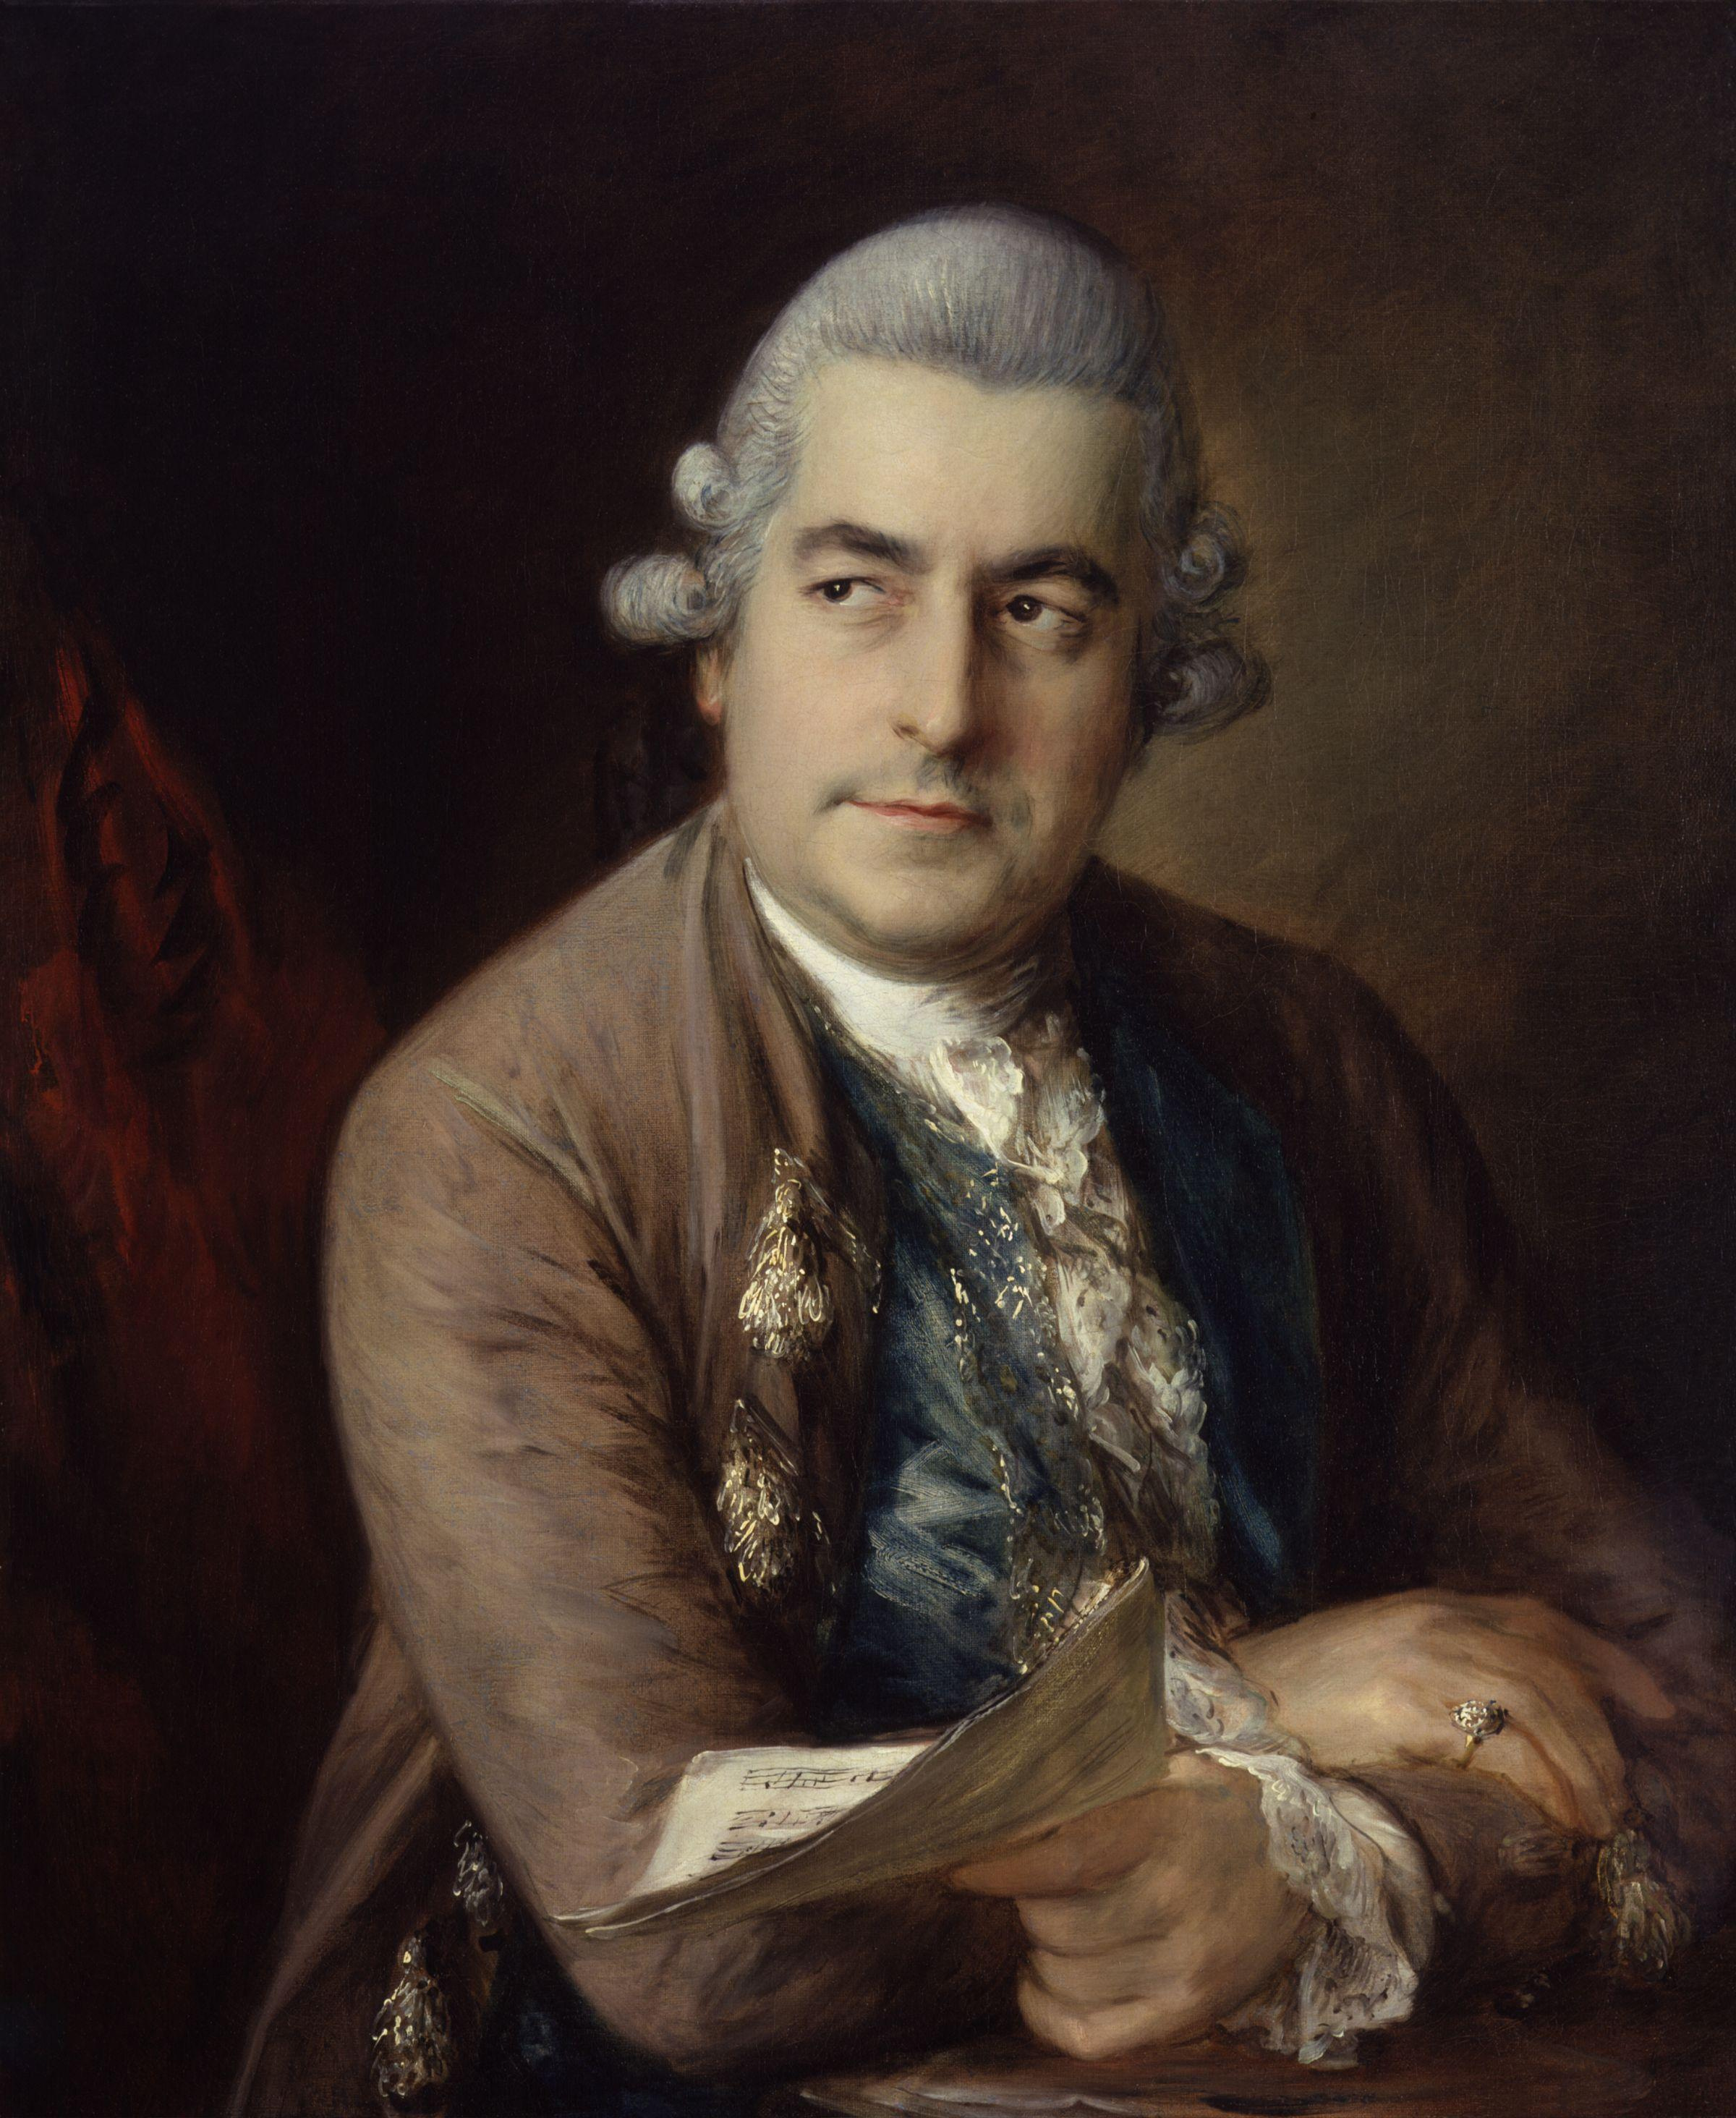 Johann Christian Bach ritratto da Thomas Gainsborough